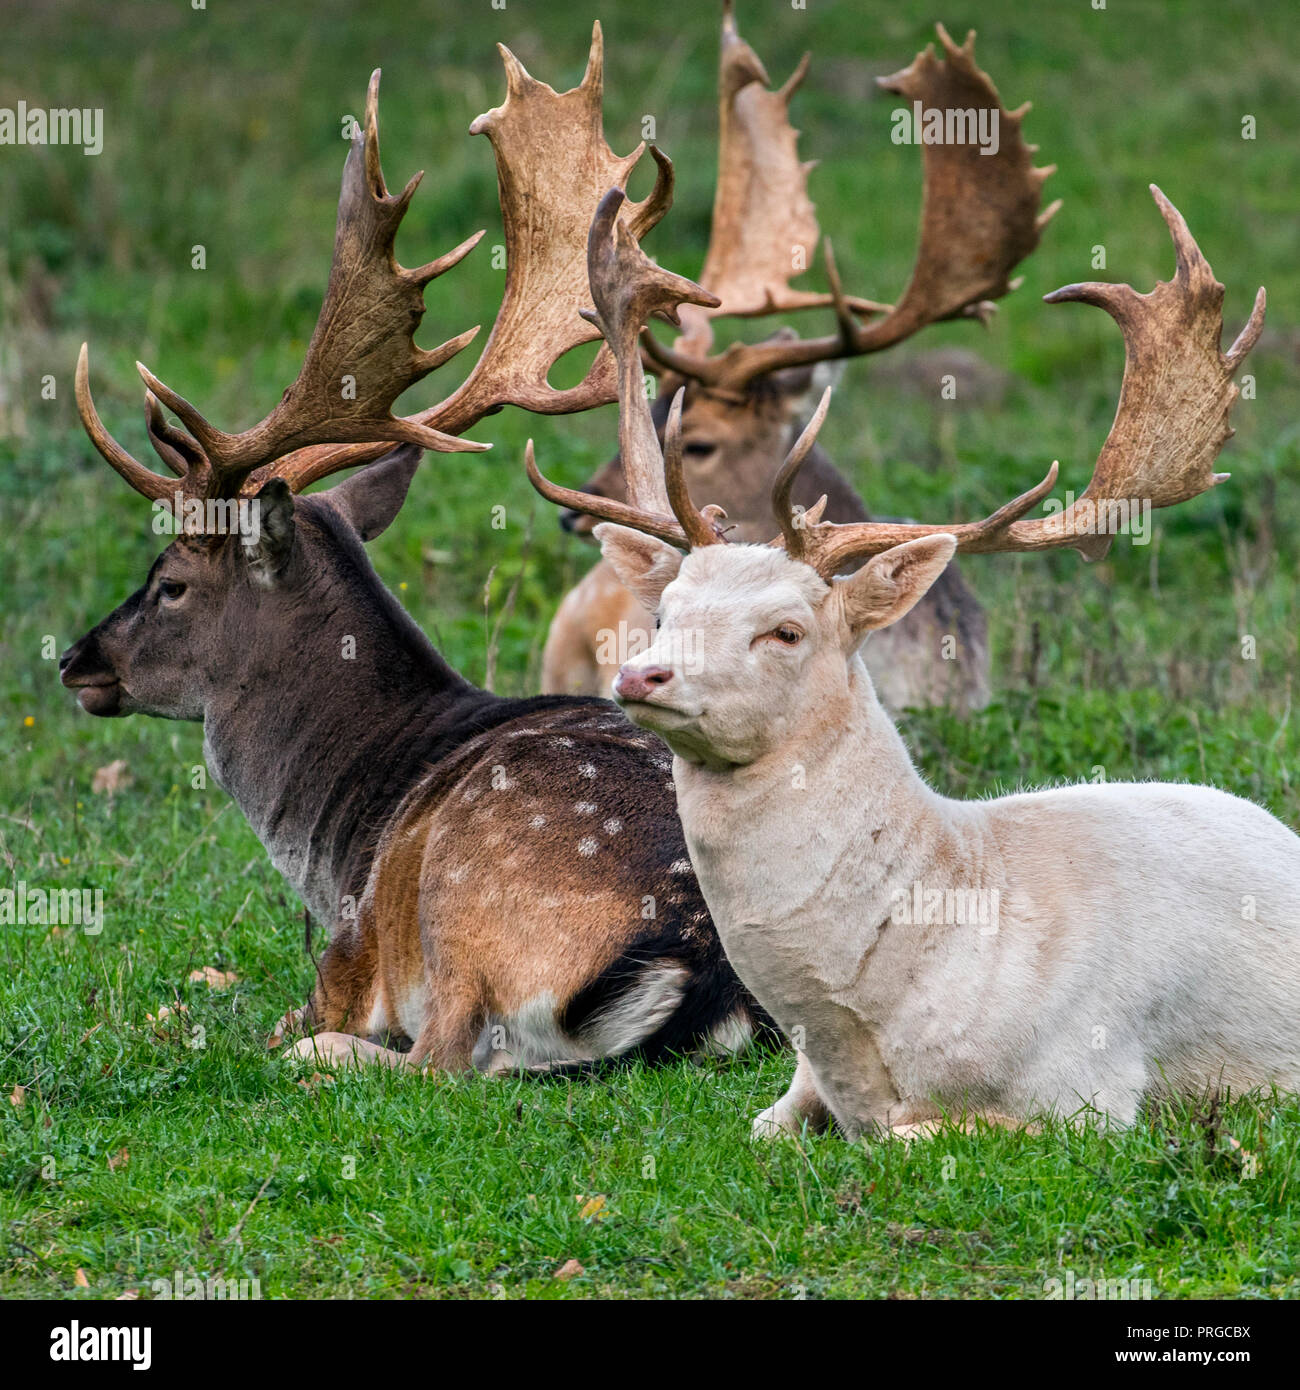 Fallow deer (Dama dama) bucks / males with large antlers resting in meadow showing common darker colouring of winter coat and leucistic white variant - Stock Image